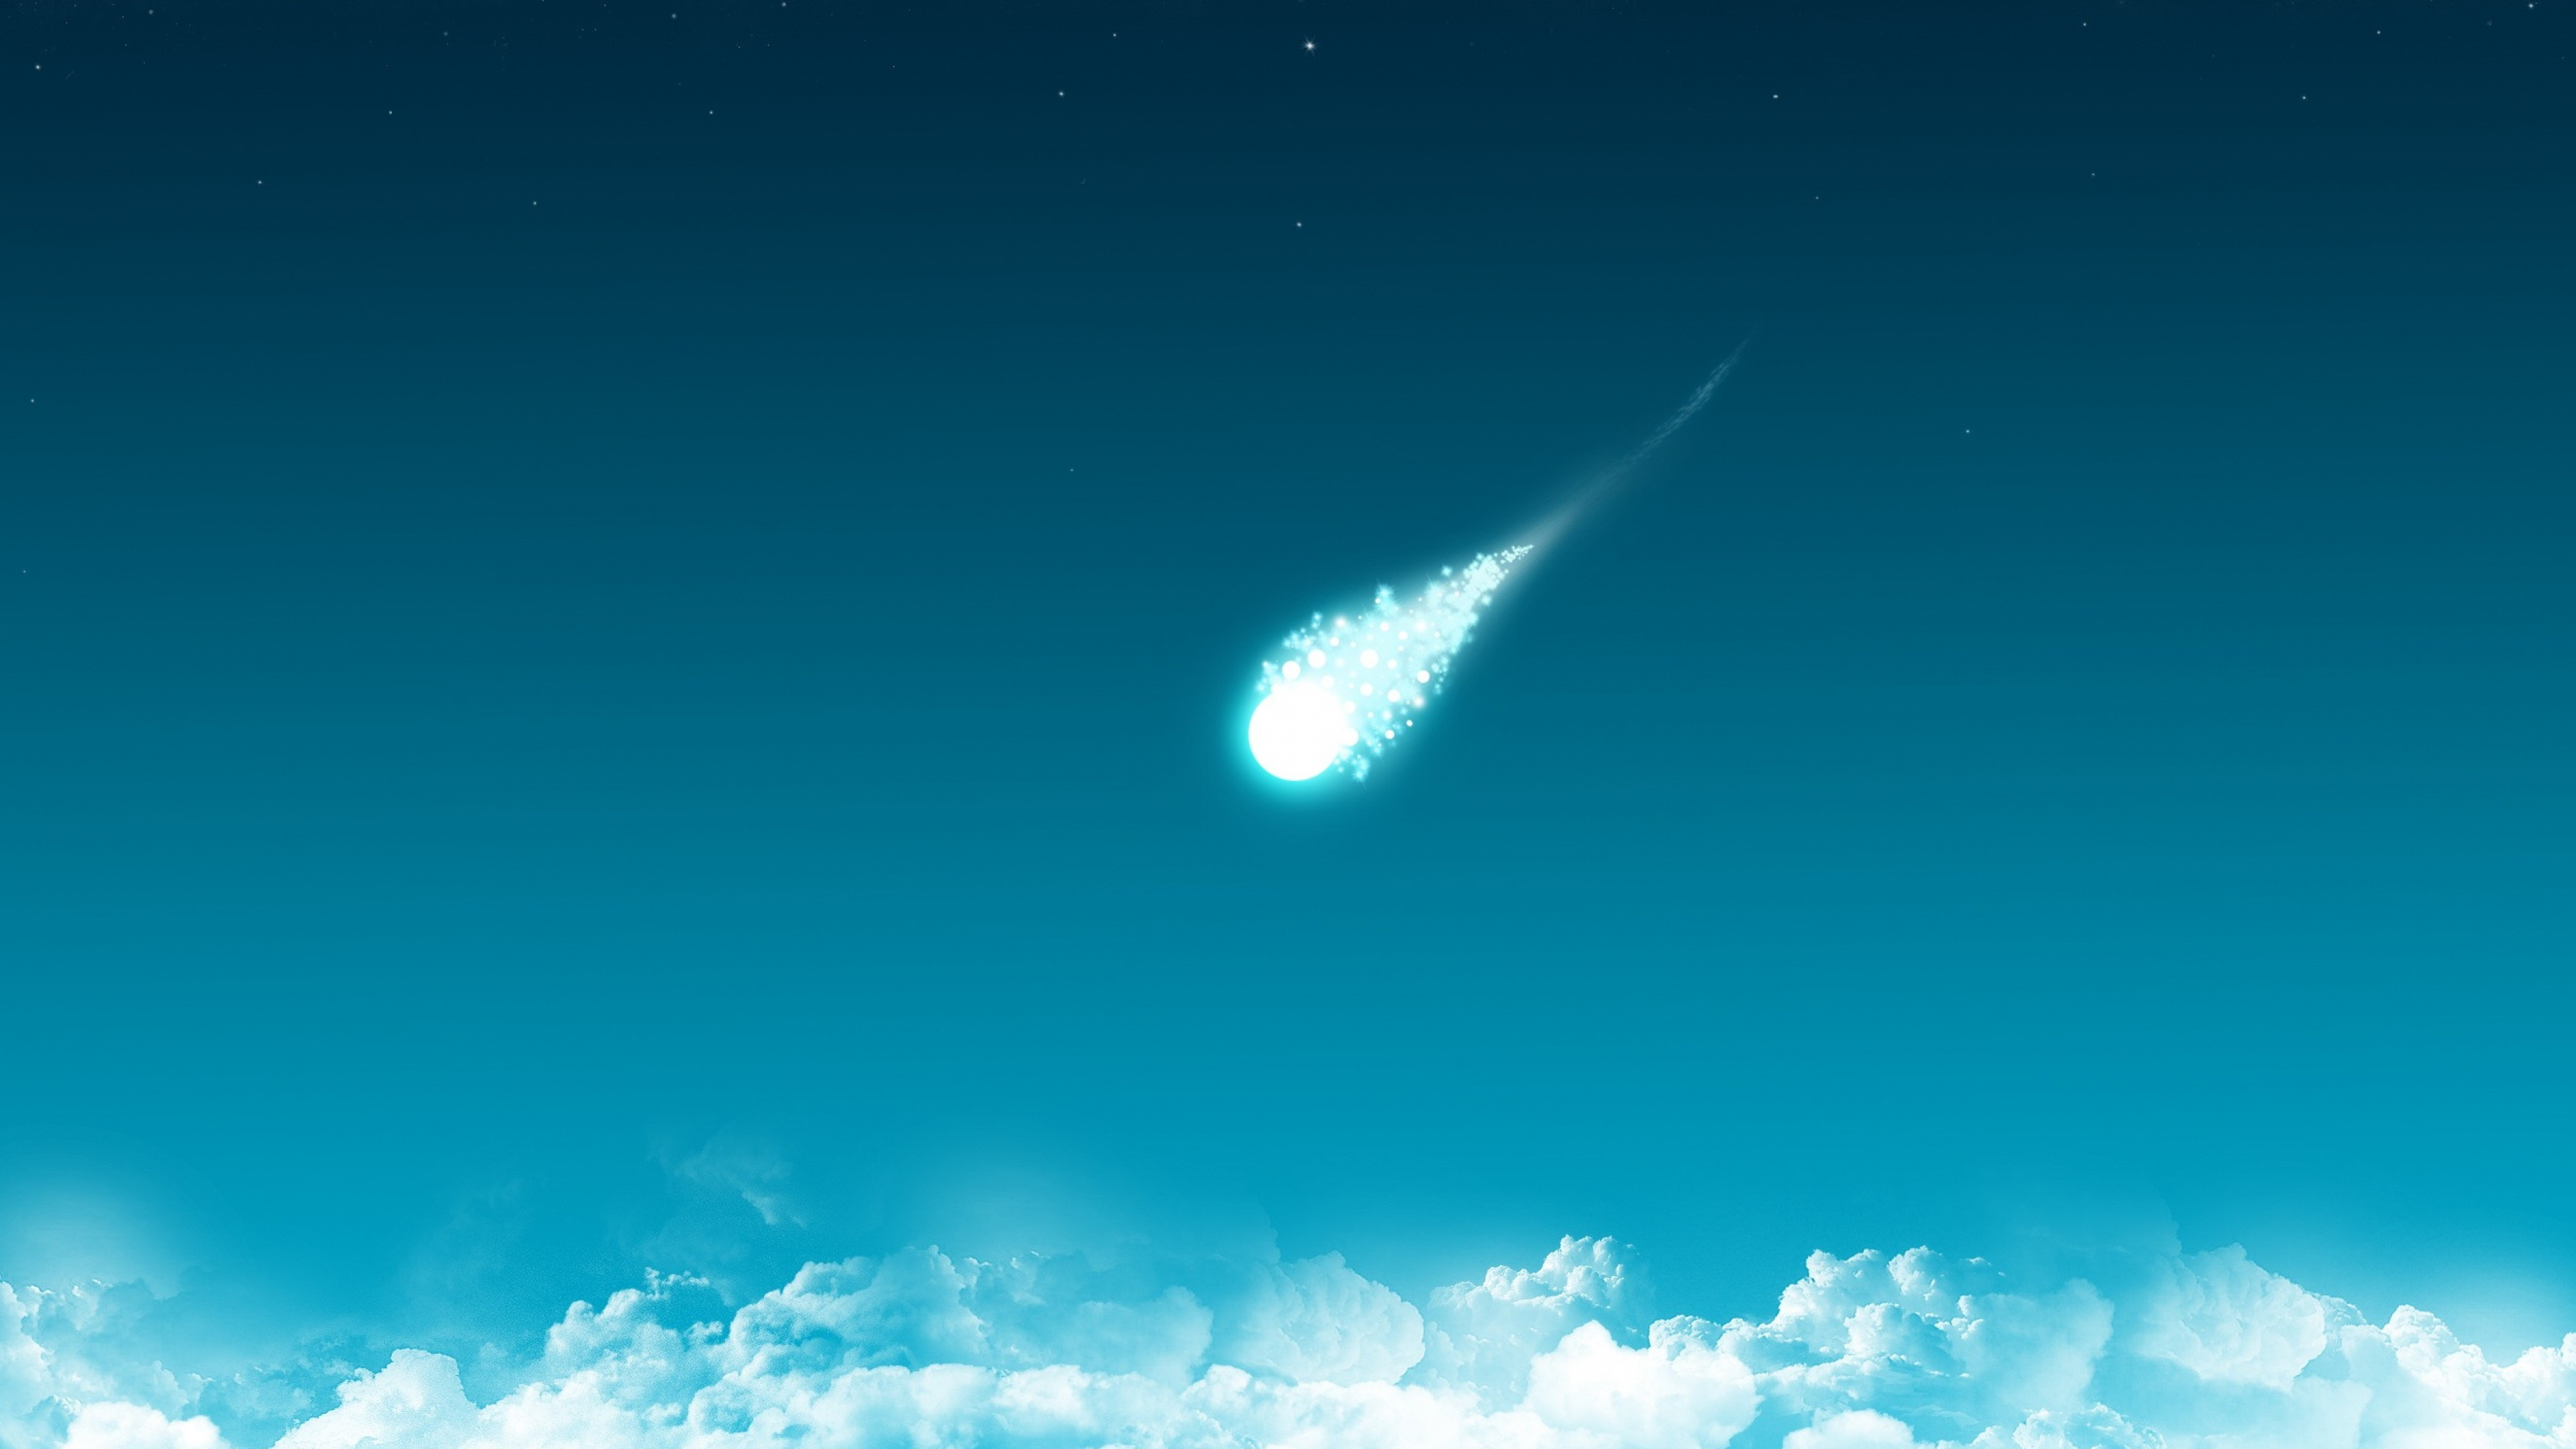 Download Wallpaper 3840x2160 clouds comet minimalism 4K Ultra HD HD 3840x2160